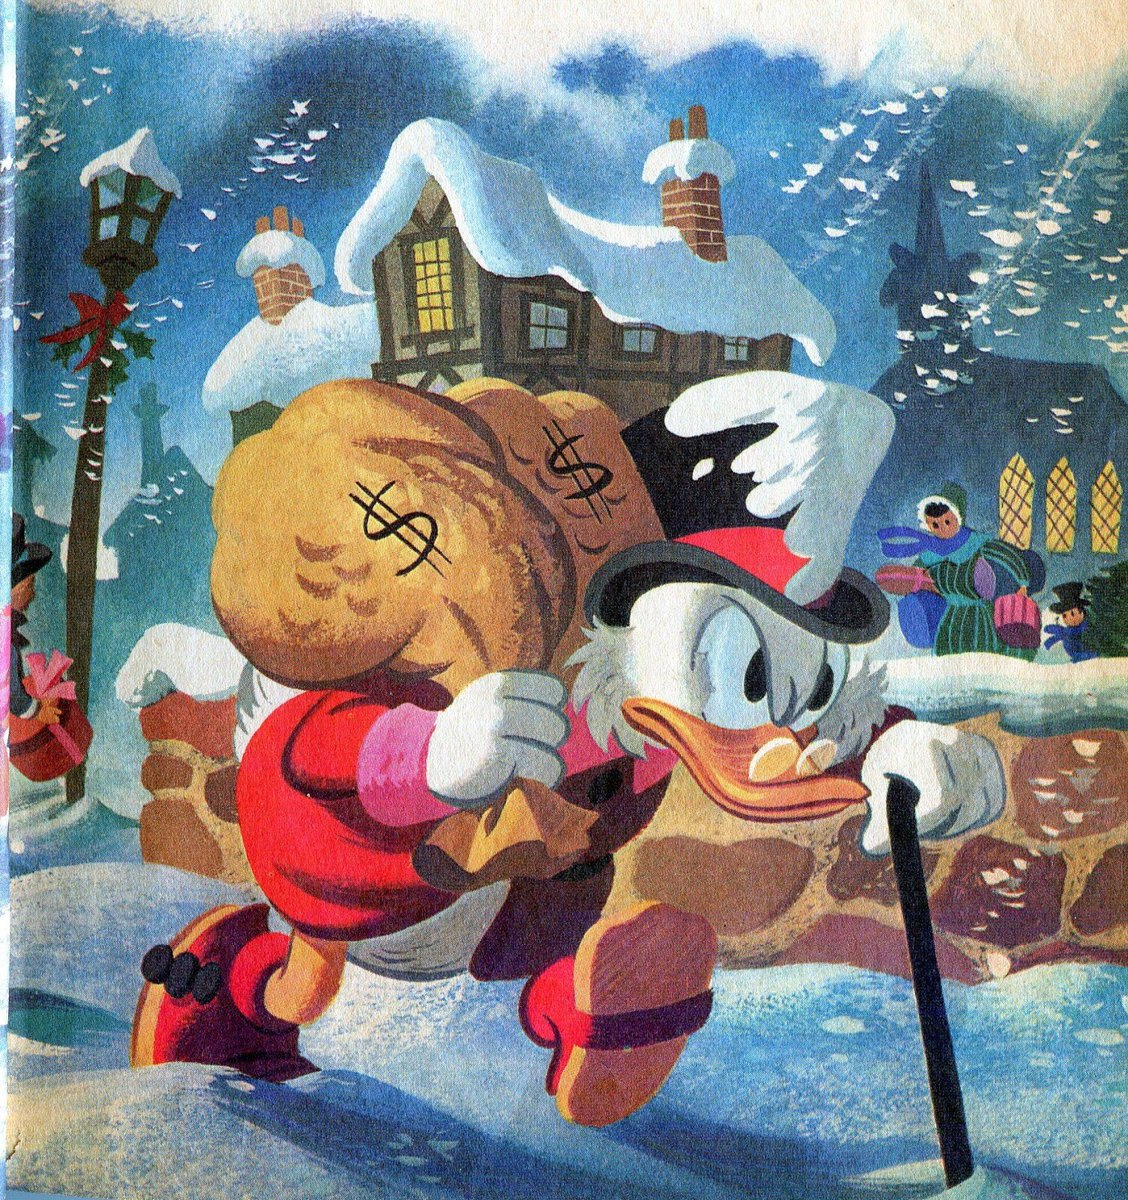 Scrooge Mcduck Christmas Carol.Tales From Weirdland On Twitter Scrooge Mcduck From The